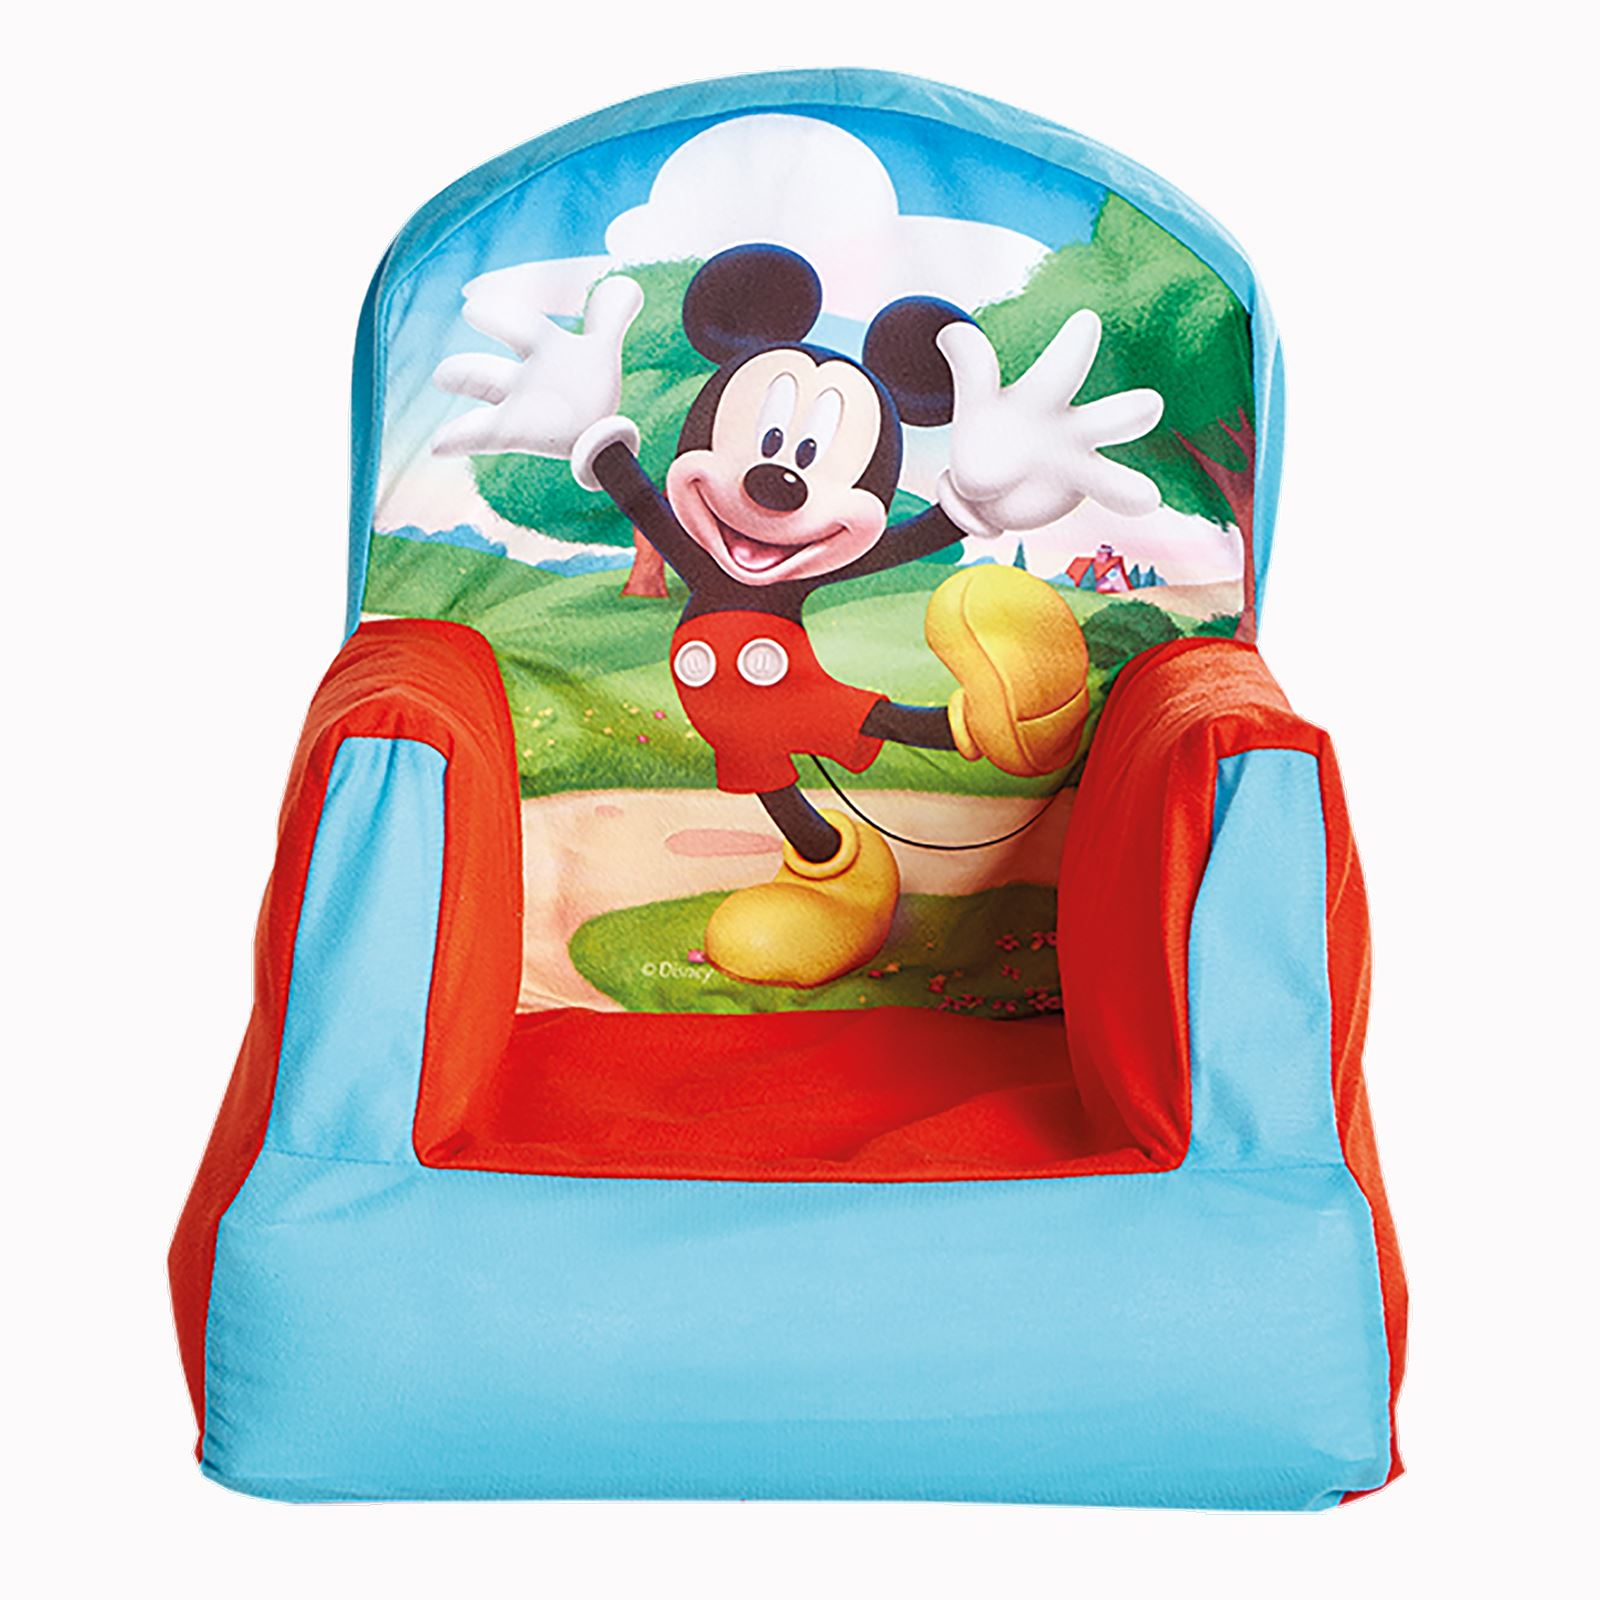 mickey mouse cosy chair clubhouse design new inflatable bedroom